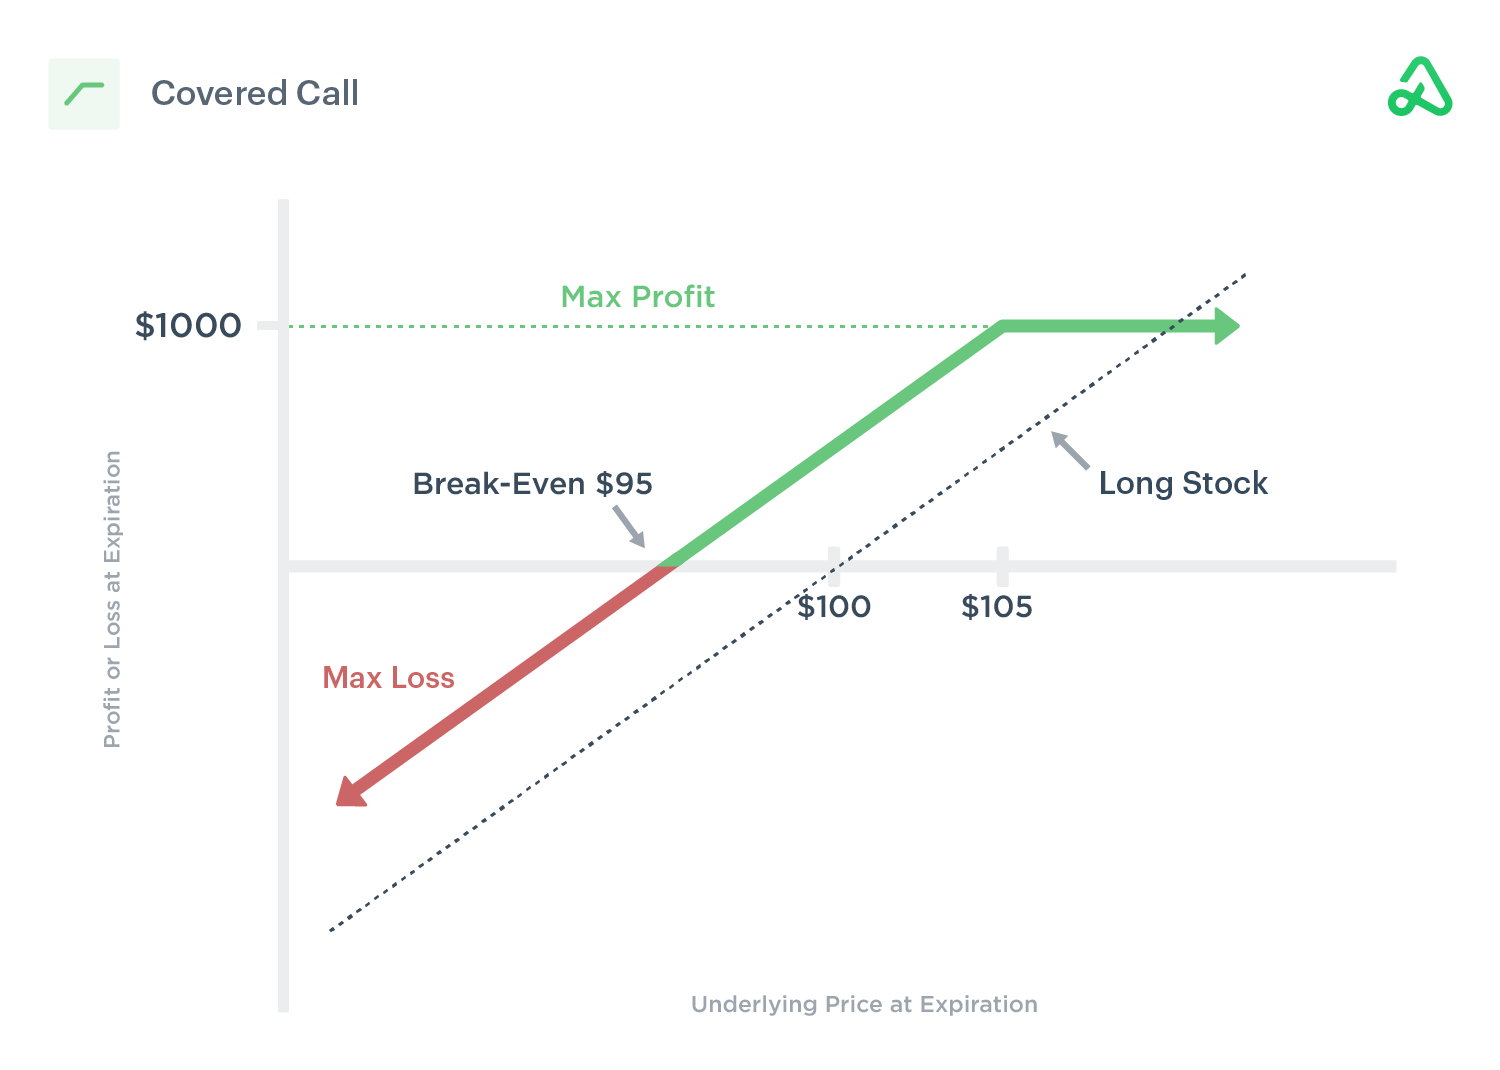 Covered call payoff diagram showing max profit, max loss, and break-even points